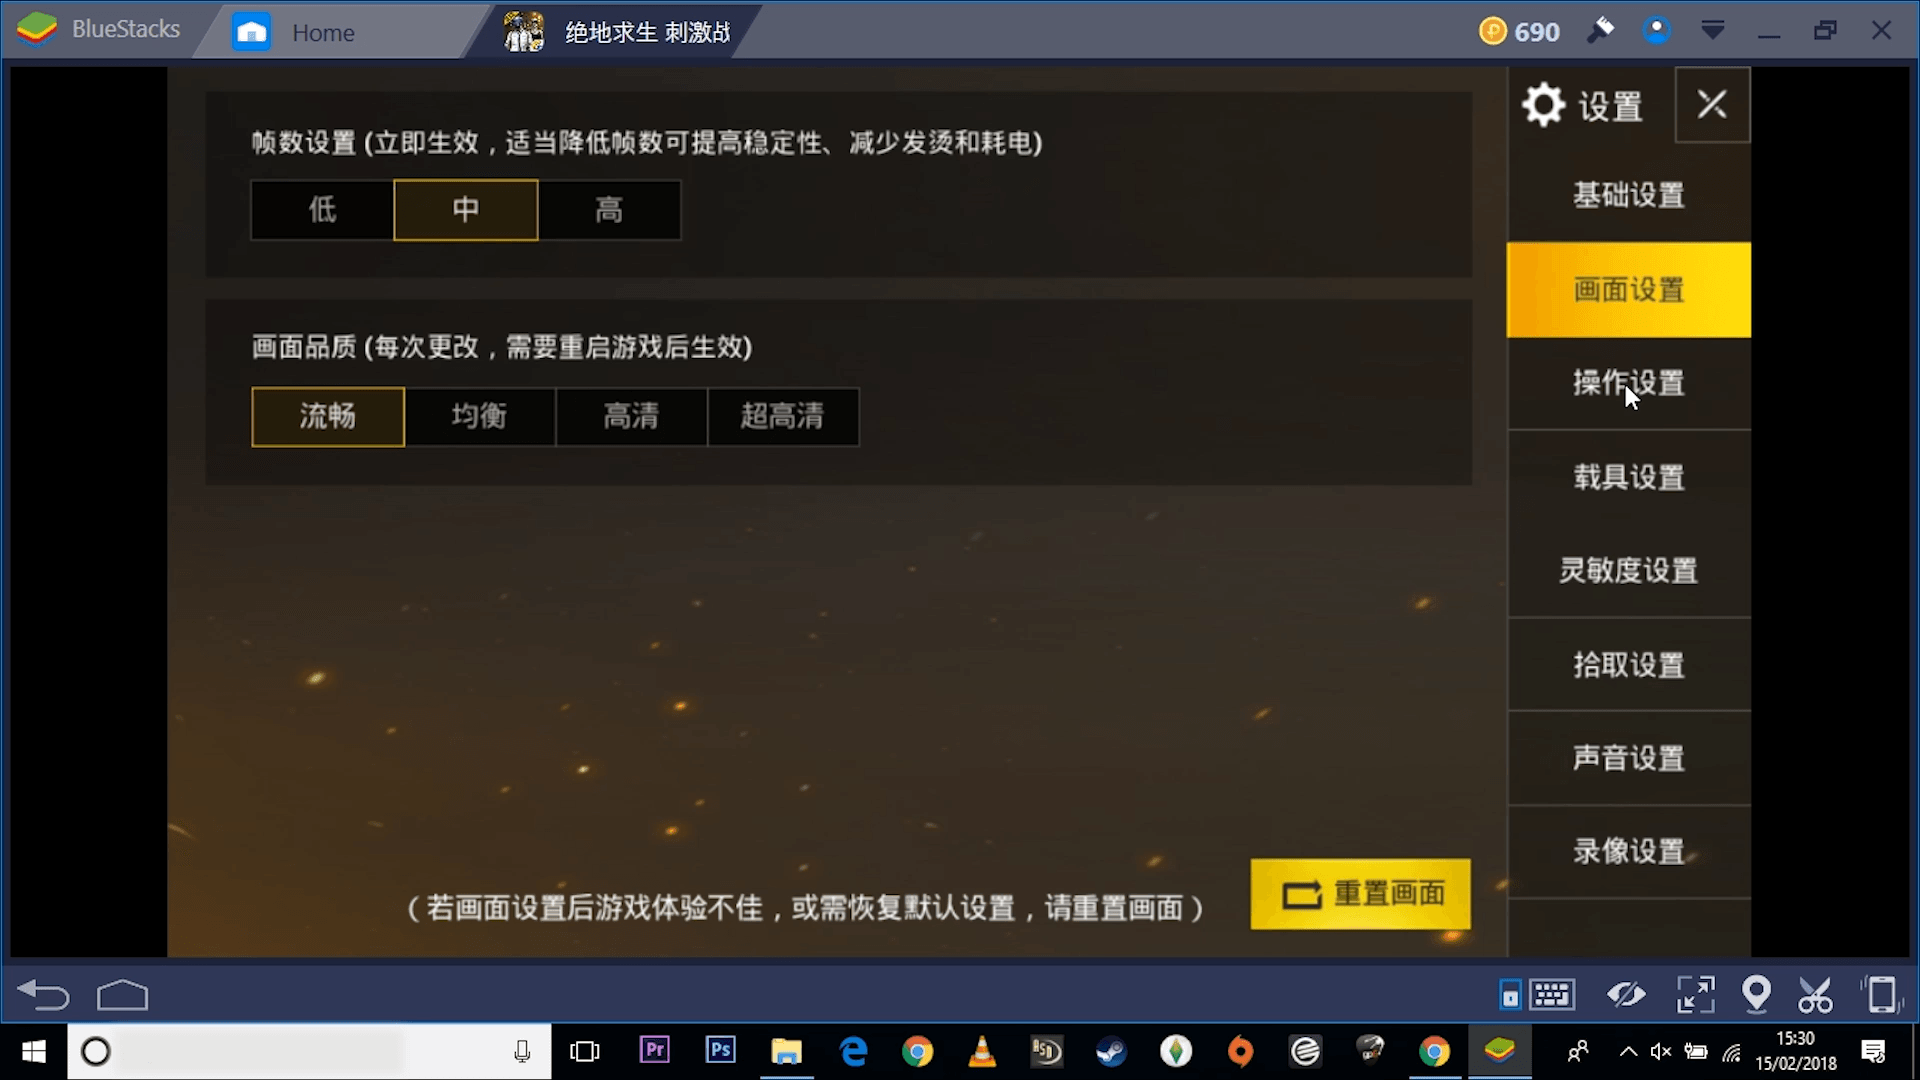 How to Install and Play PUBG Mobile with Bluestacks